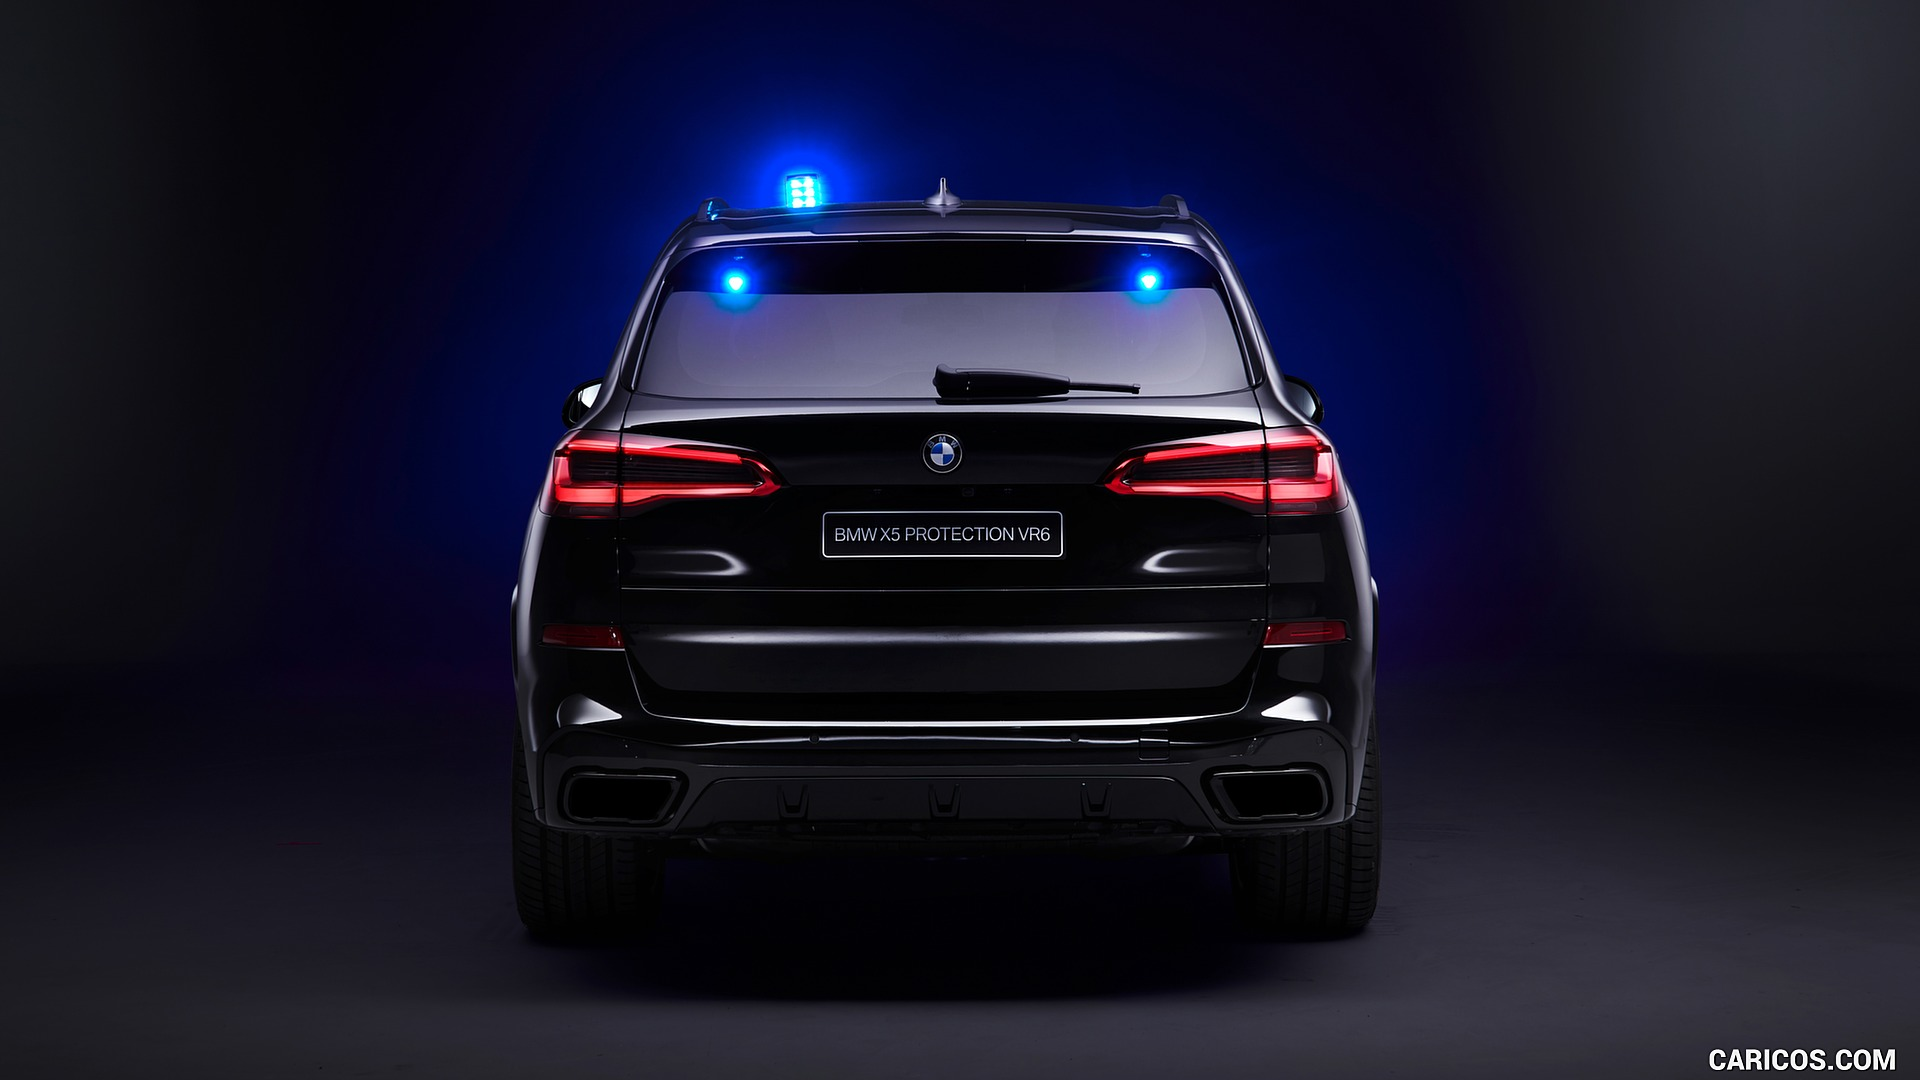 2020 BMW X5 Protection VR6 Armored Vehicle   Rear HD Wallpaper 14 1920x1080